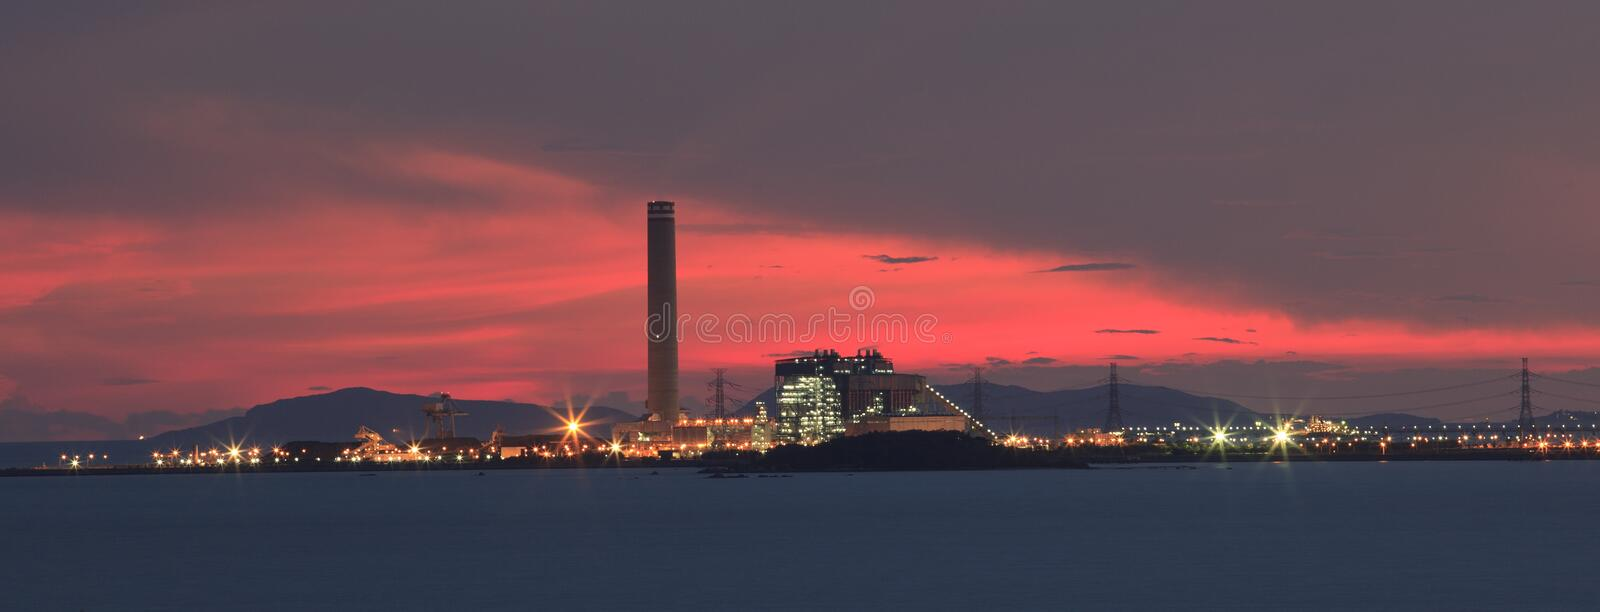 Heavy industry in industrial estate and beautiful dramatic sky t. Wilight of a day use for industry and green environment royalty free stock photos